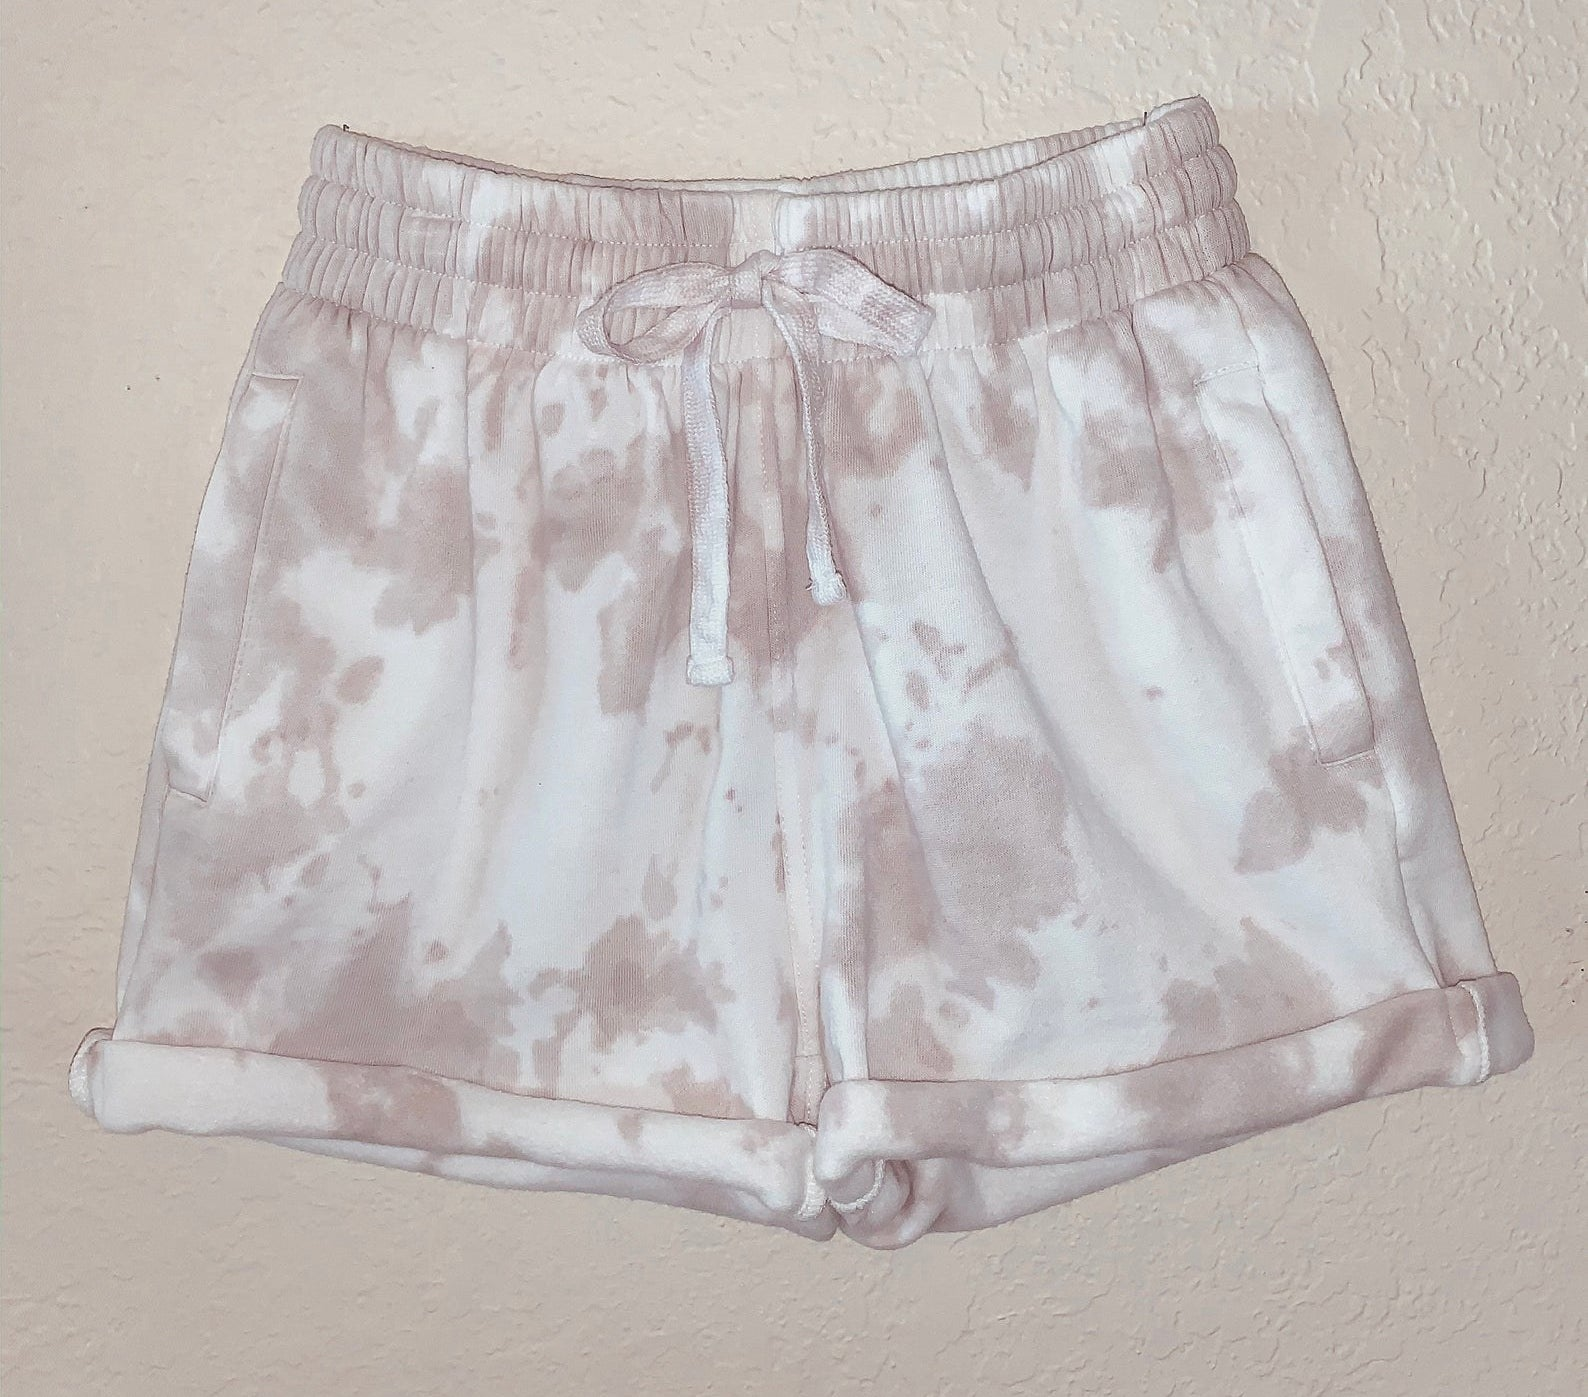 The shorts with a beige and white tie-dye pattern